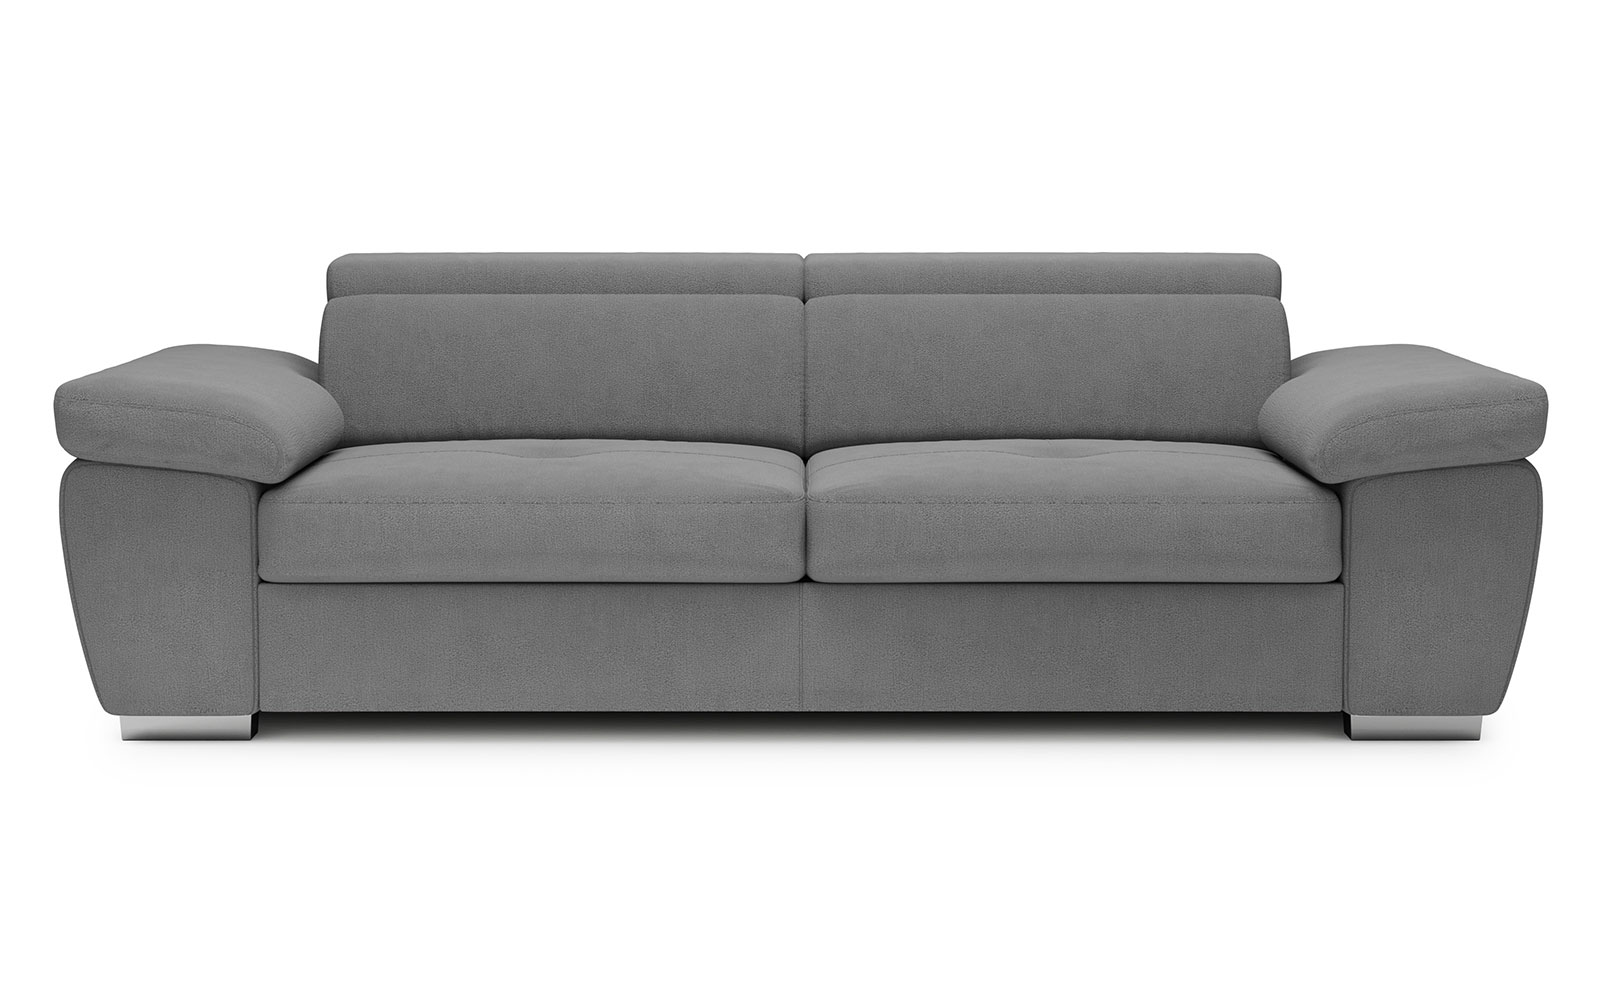 Rosso Sofa 3 - soft touch grey